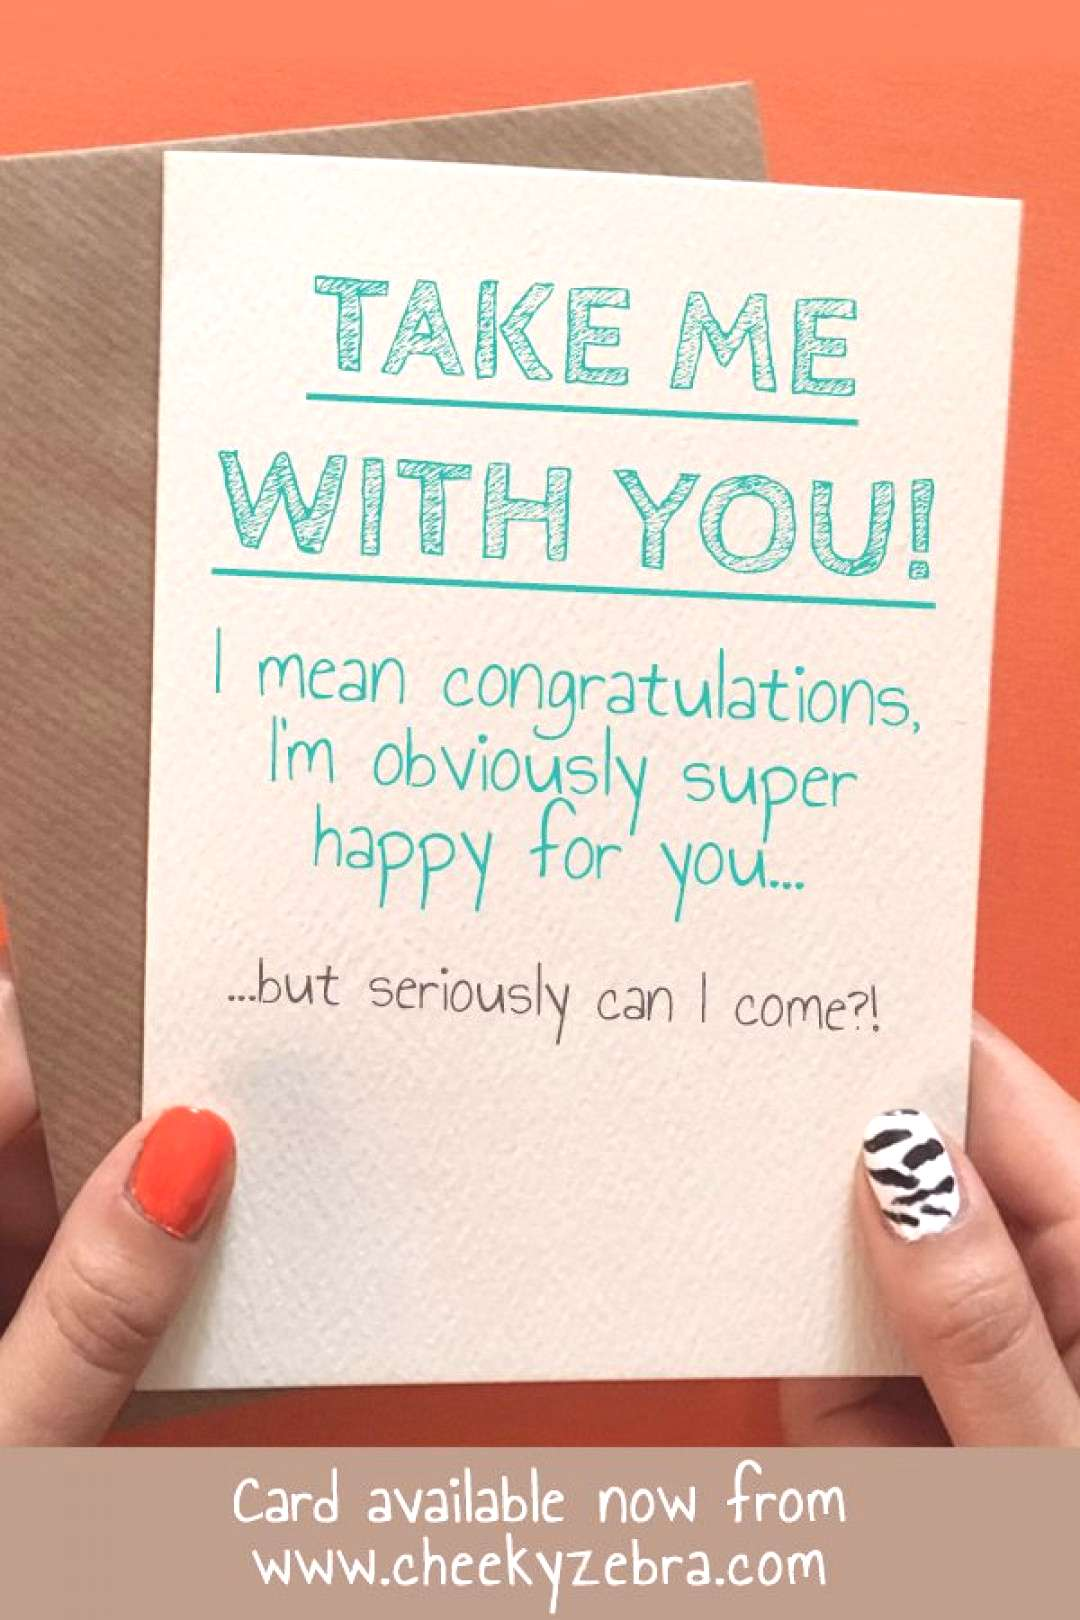 Funny Leaving Card Funny leaving and good luck card for a co worker moving on to better things. Th